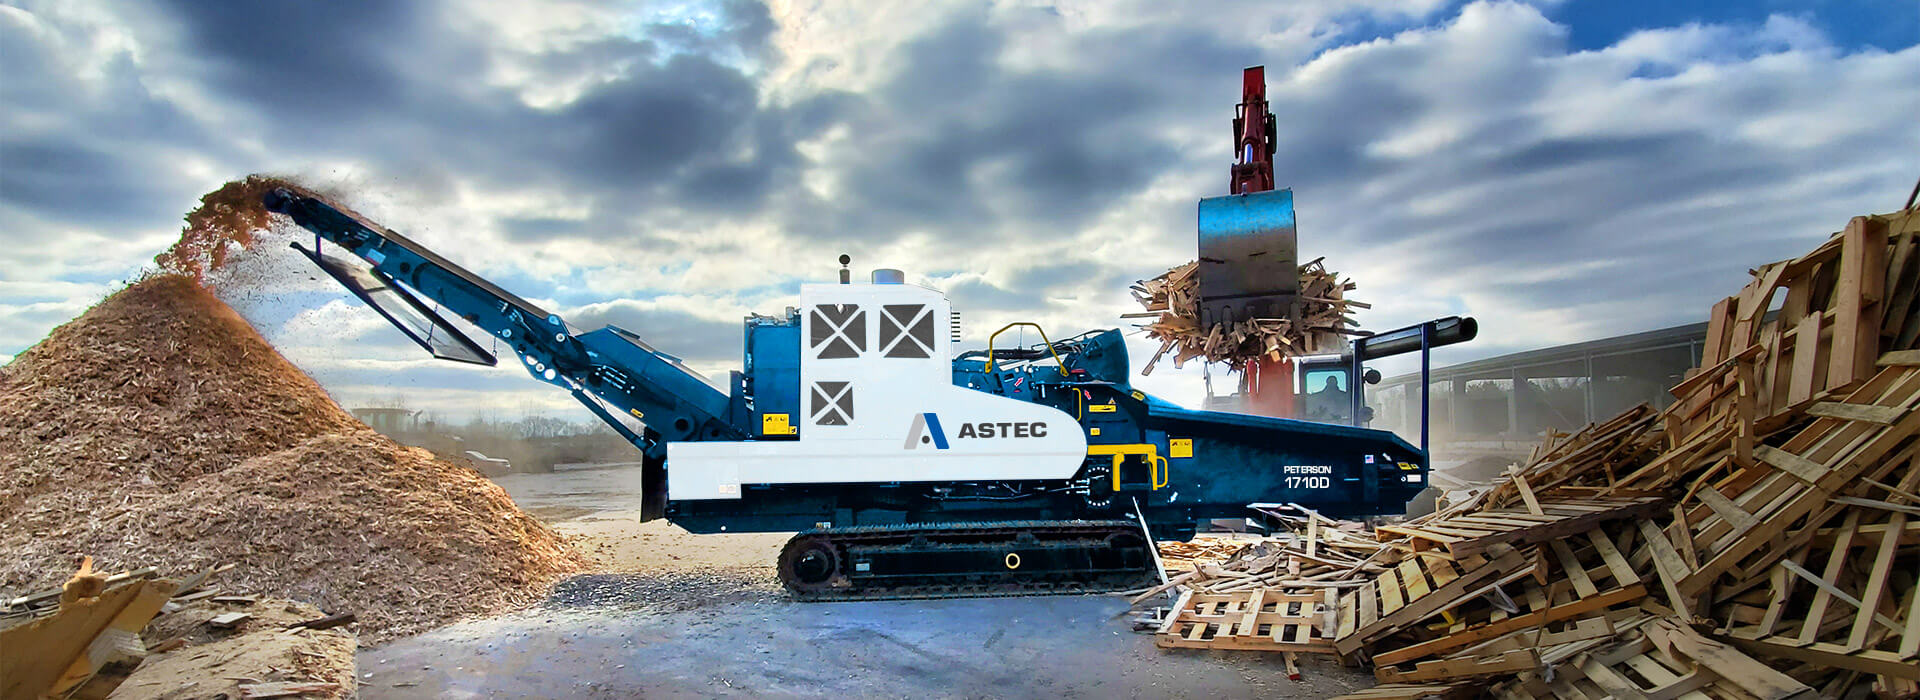 An Astec Peterson 1710D Horizontal Grinder recycling pallets into mulch and being loaded with an excavator.